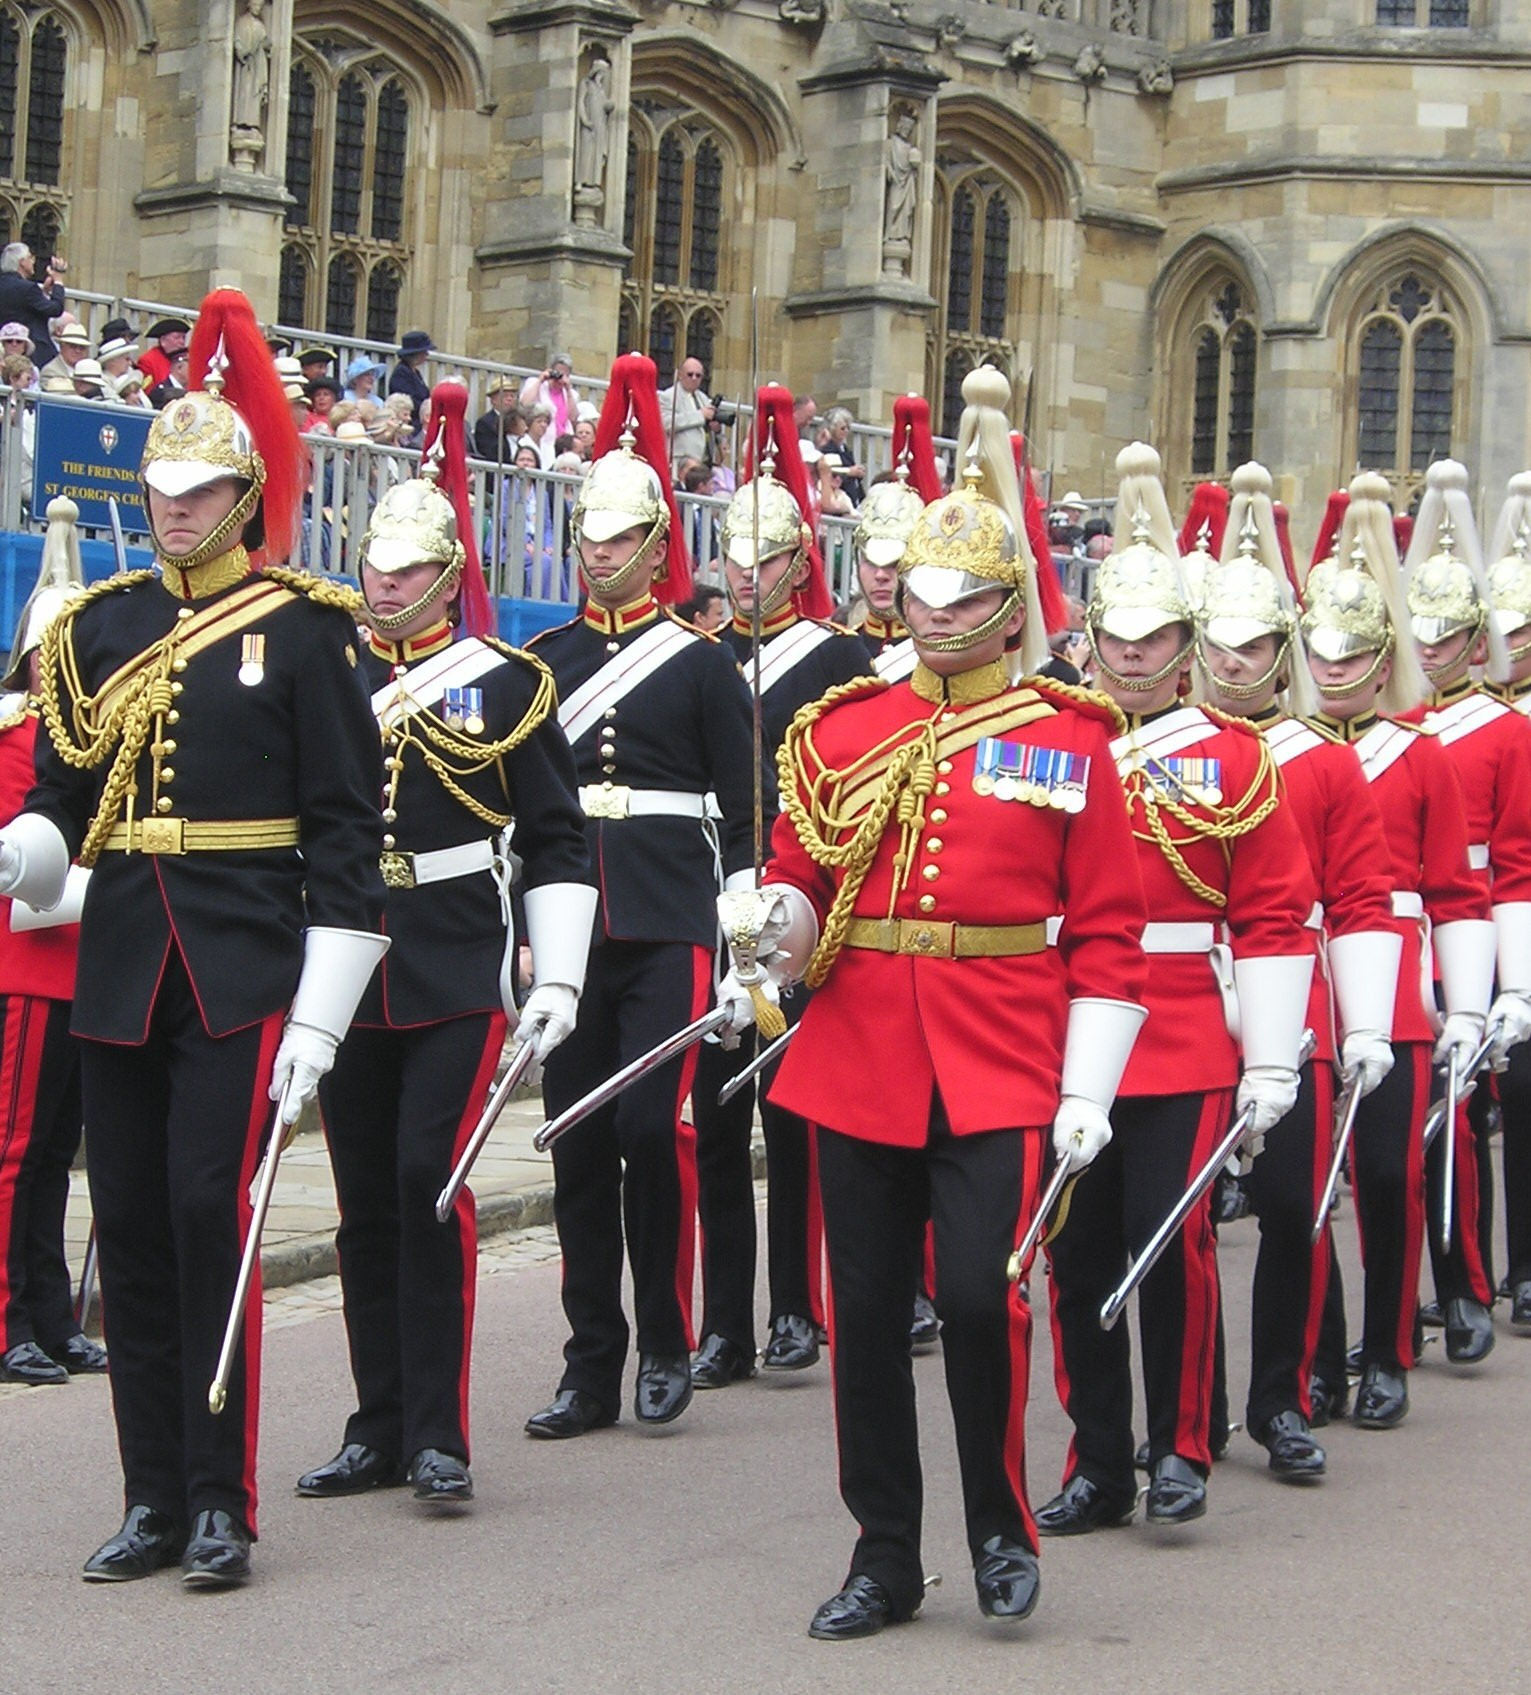 //s3.amazonaws.com/photos.geni.com/p13/52/d6/d5/39/5344483fe61a9724/the_blues_and_royals_left_and_life_guards_right_at_the_order_of_the_garter_ceremony_at_windsor_castle_original.jpg